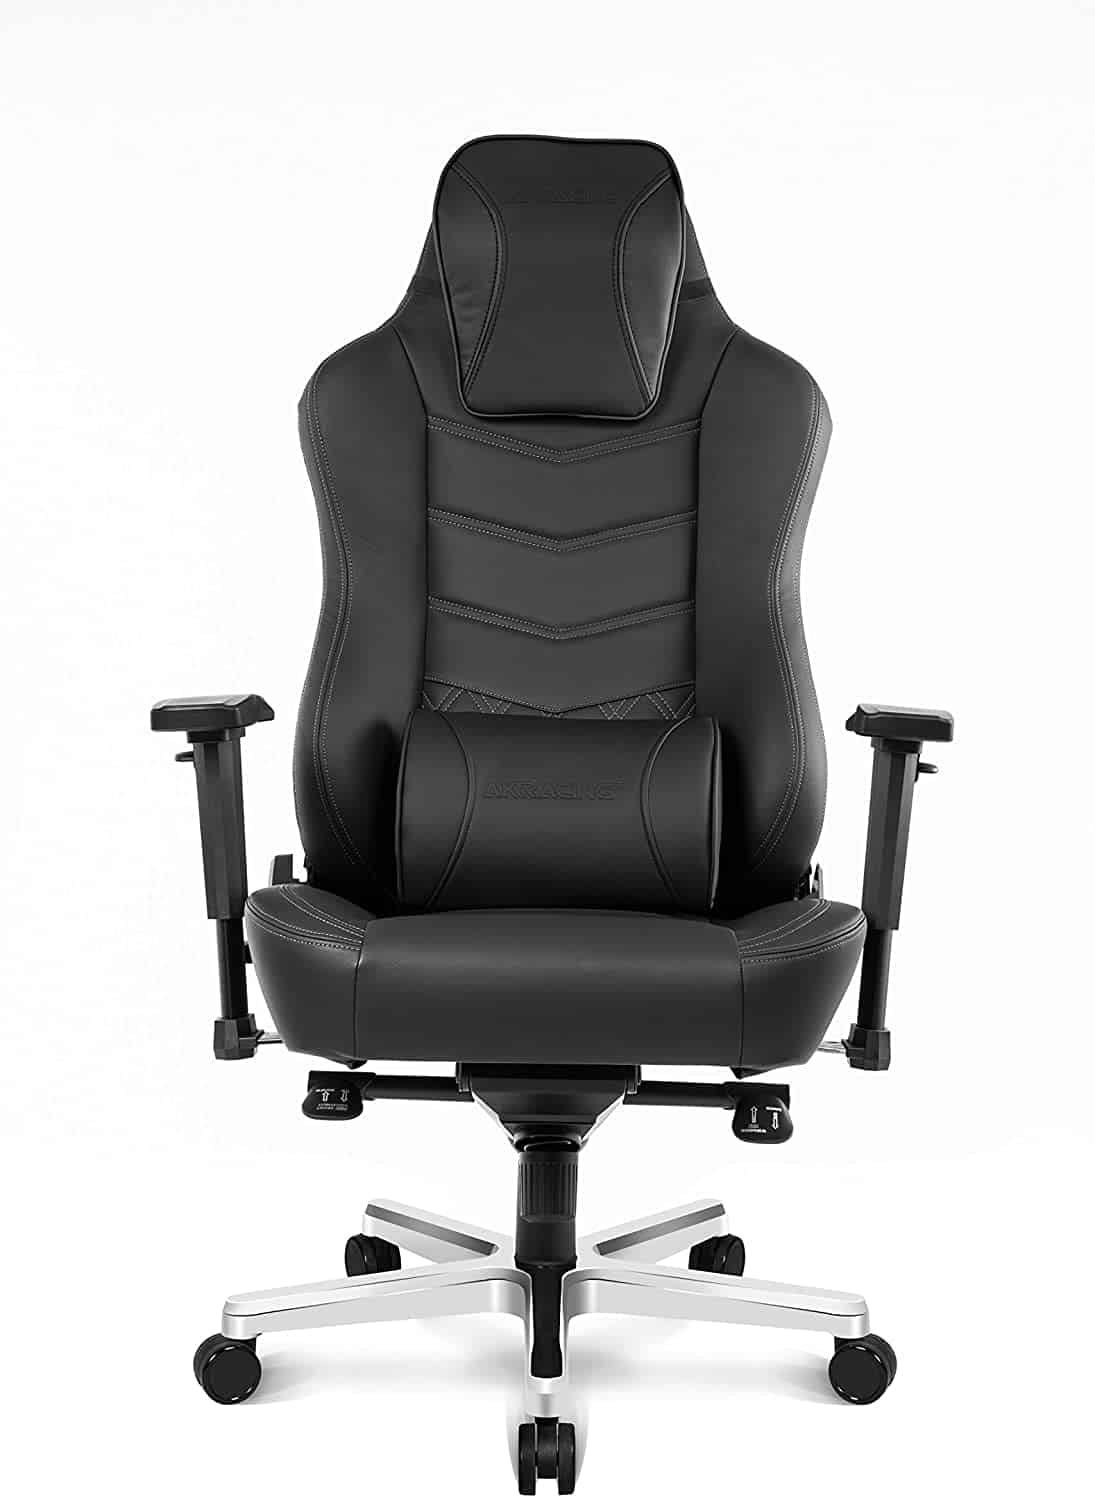 AKRacing Office Series Onyx Deluxe Executive Real Leather Desk Chair